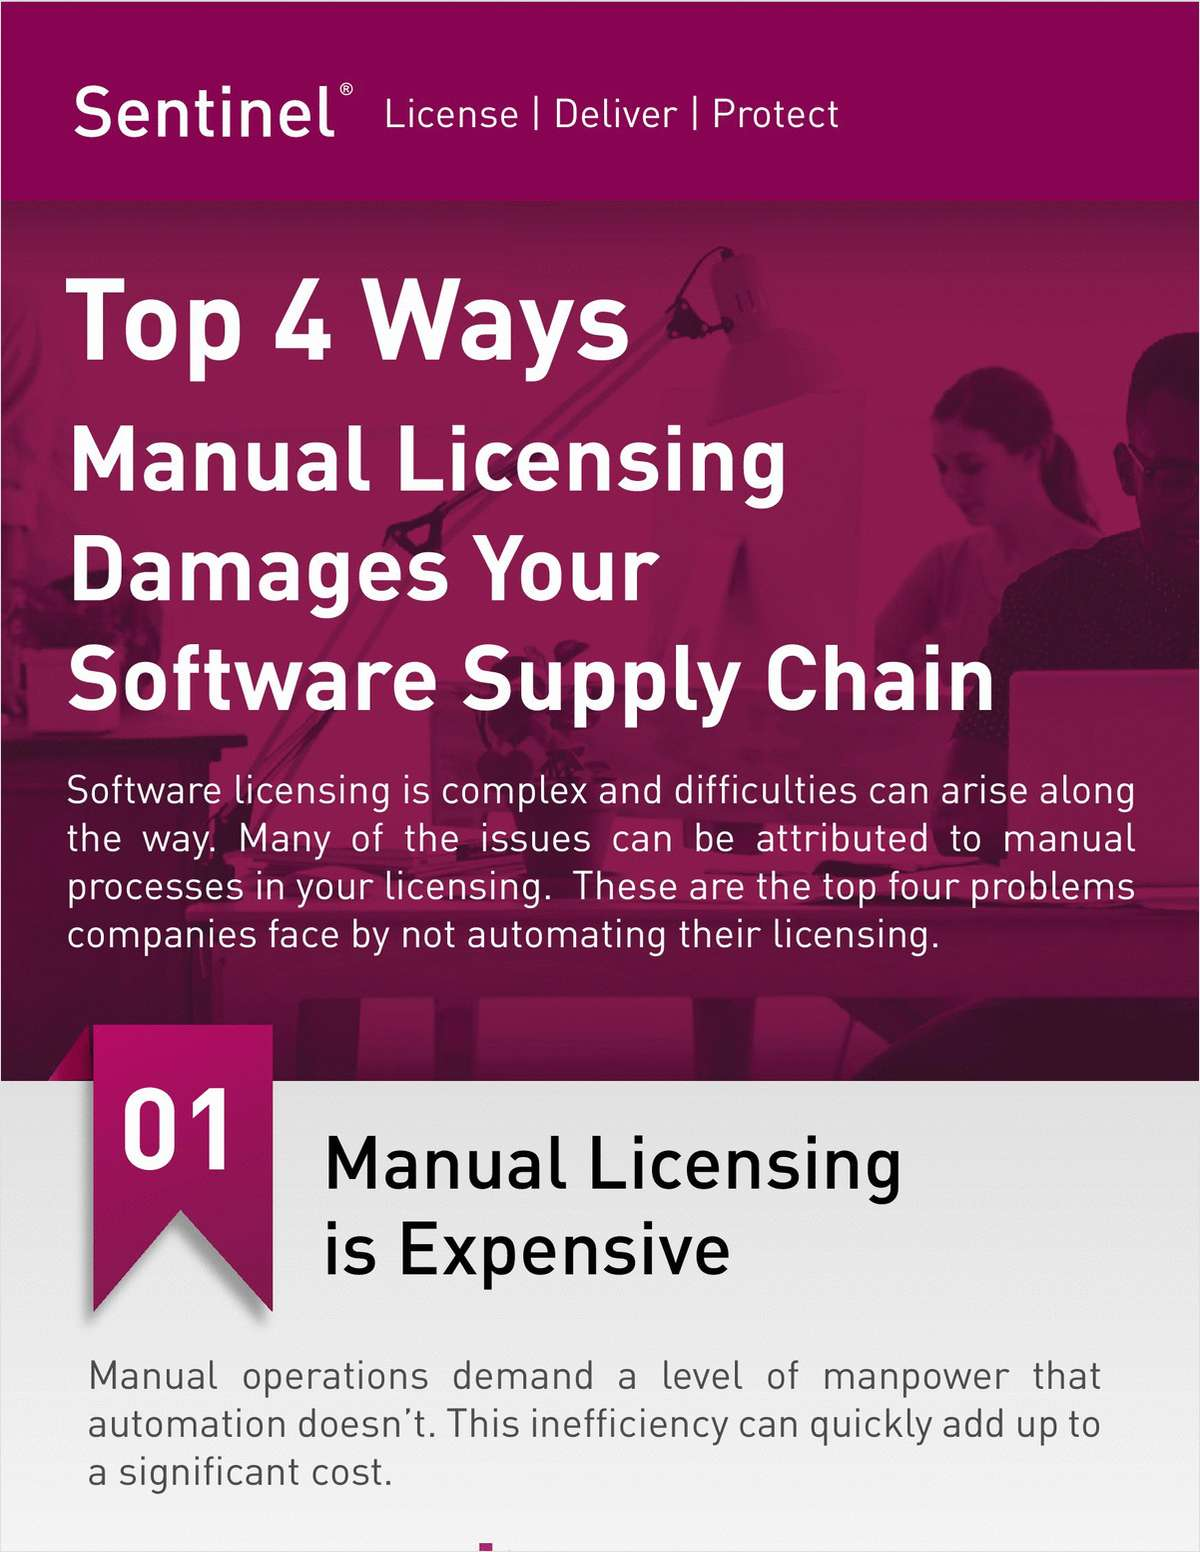 The Top 4 Ways Manual Licensing Damages Your Software Supply Chain